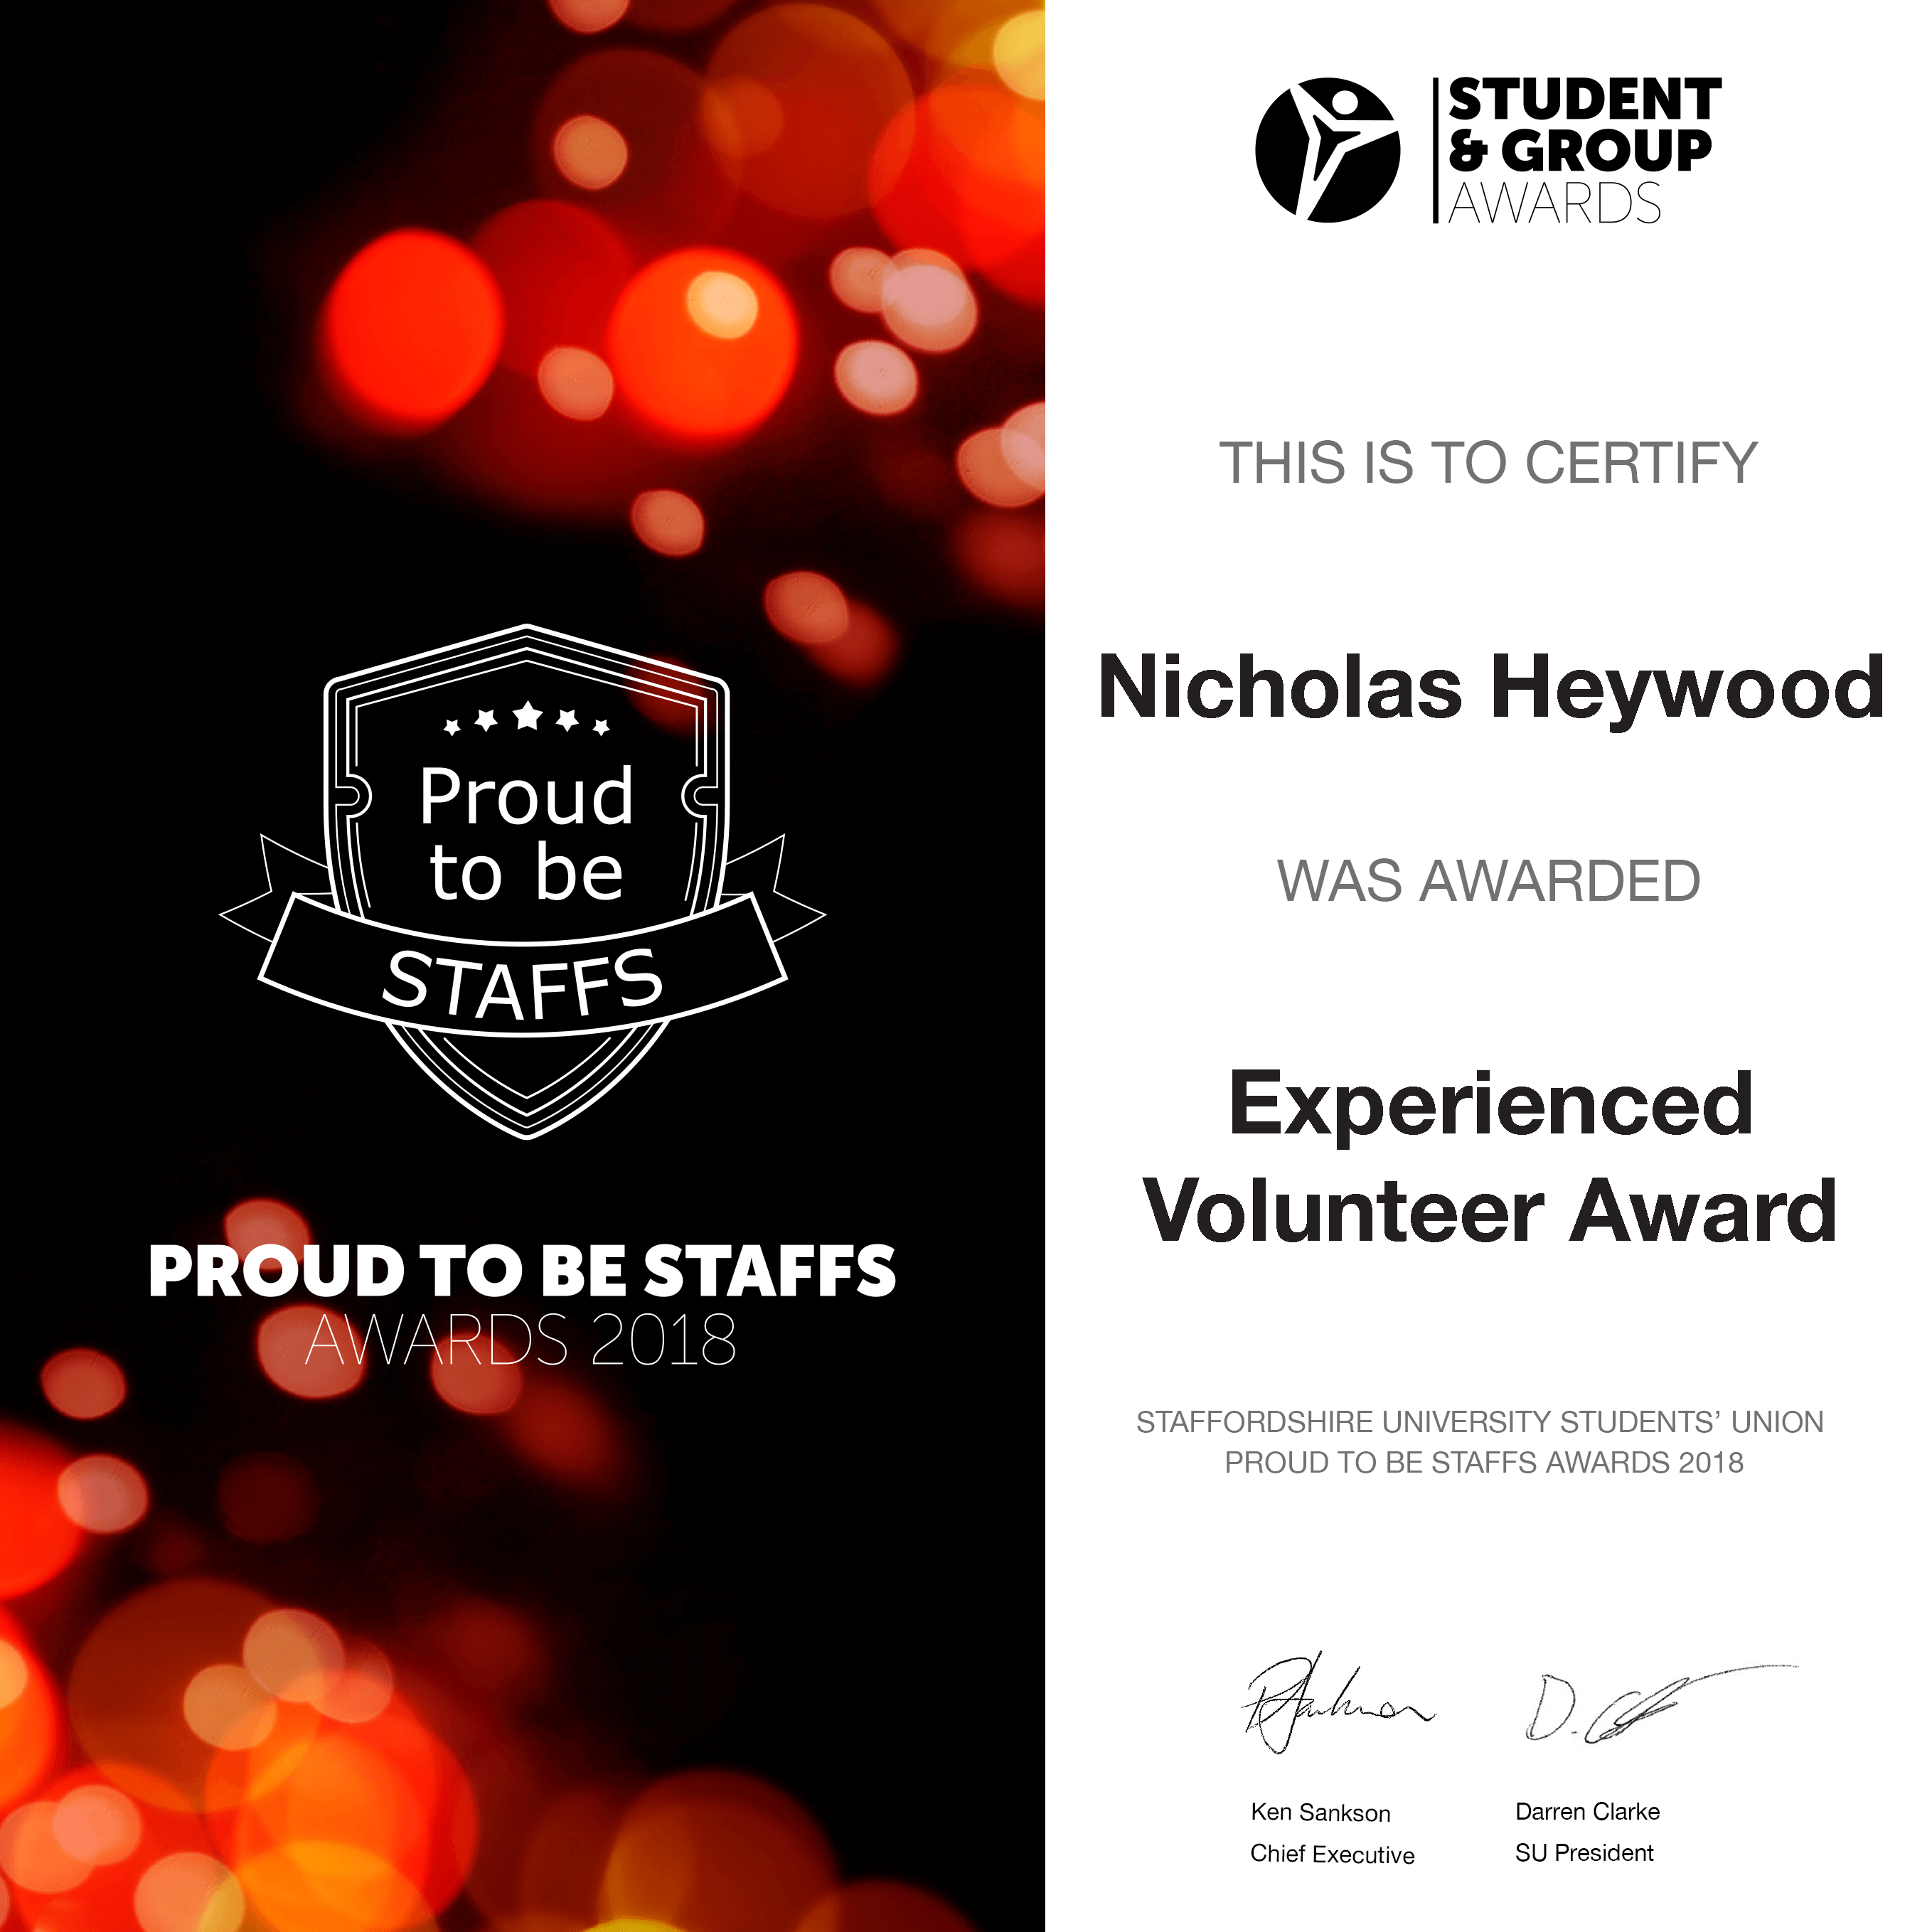 Experienced Volunteer Award 2018 - Nicholas Heywood